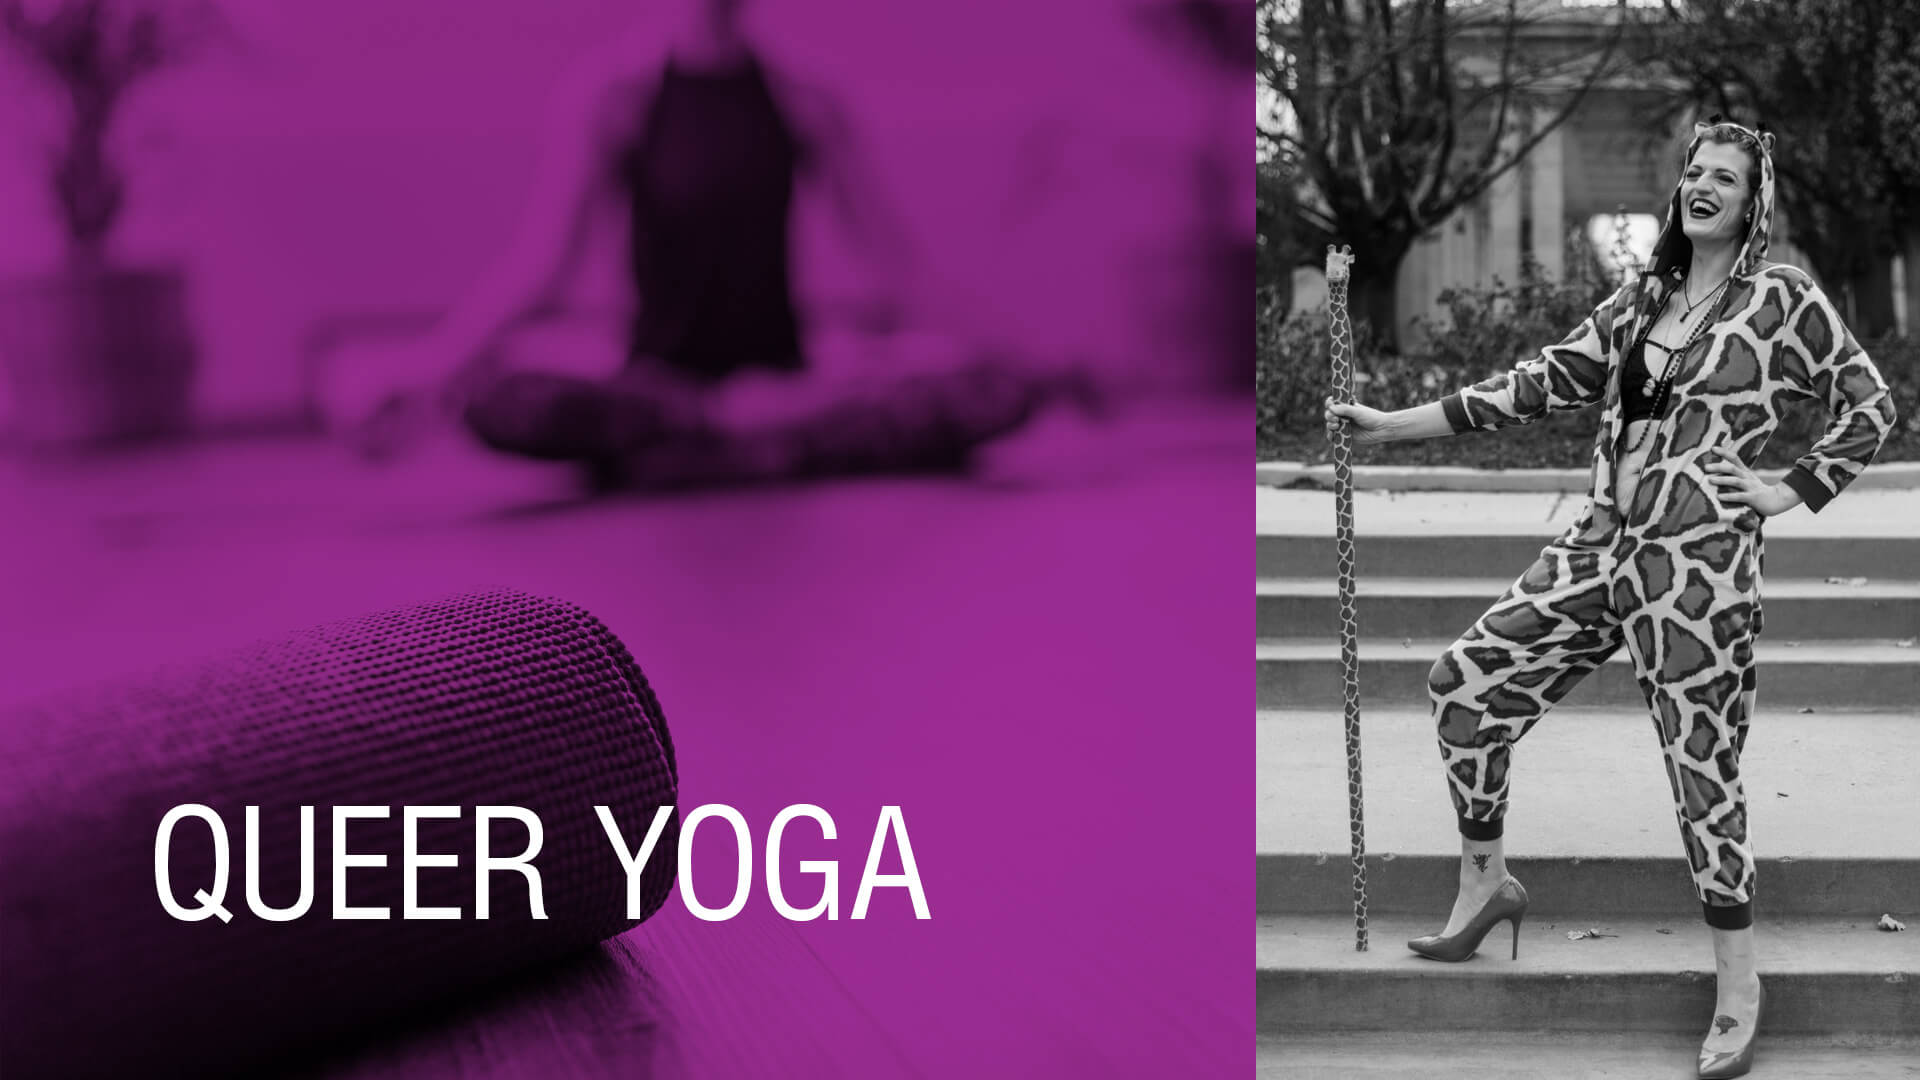 Queer Yoga at the Park